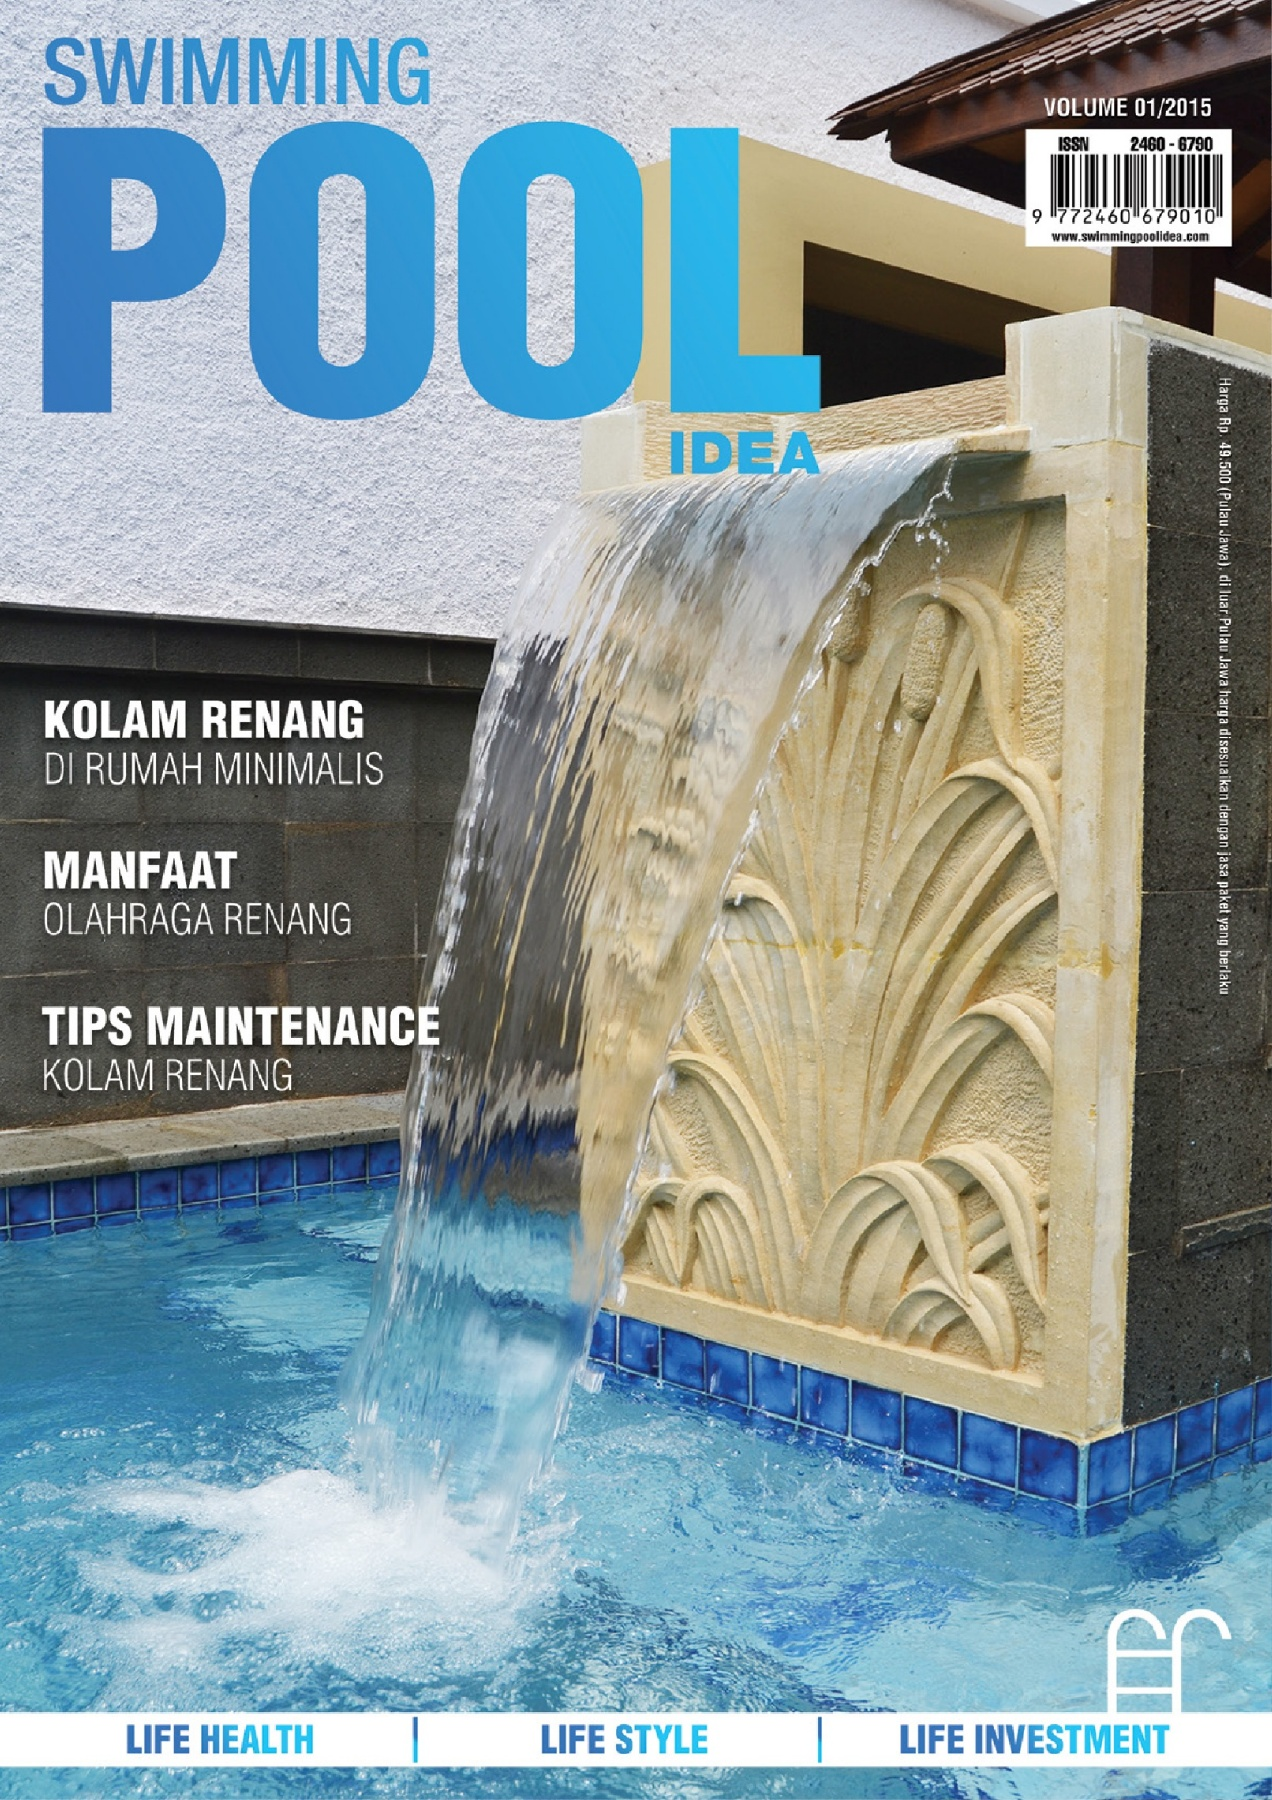 MAJALAH SWIMMING POOL IDEA VOLUME 1 Pages 1 50 Text